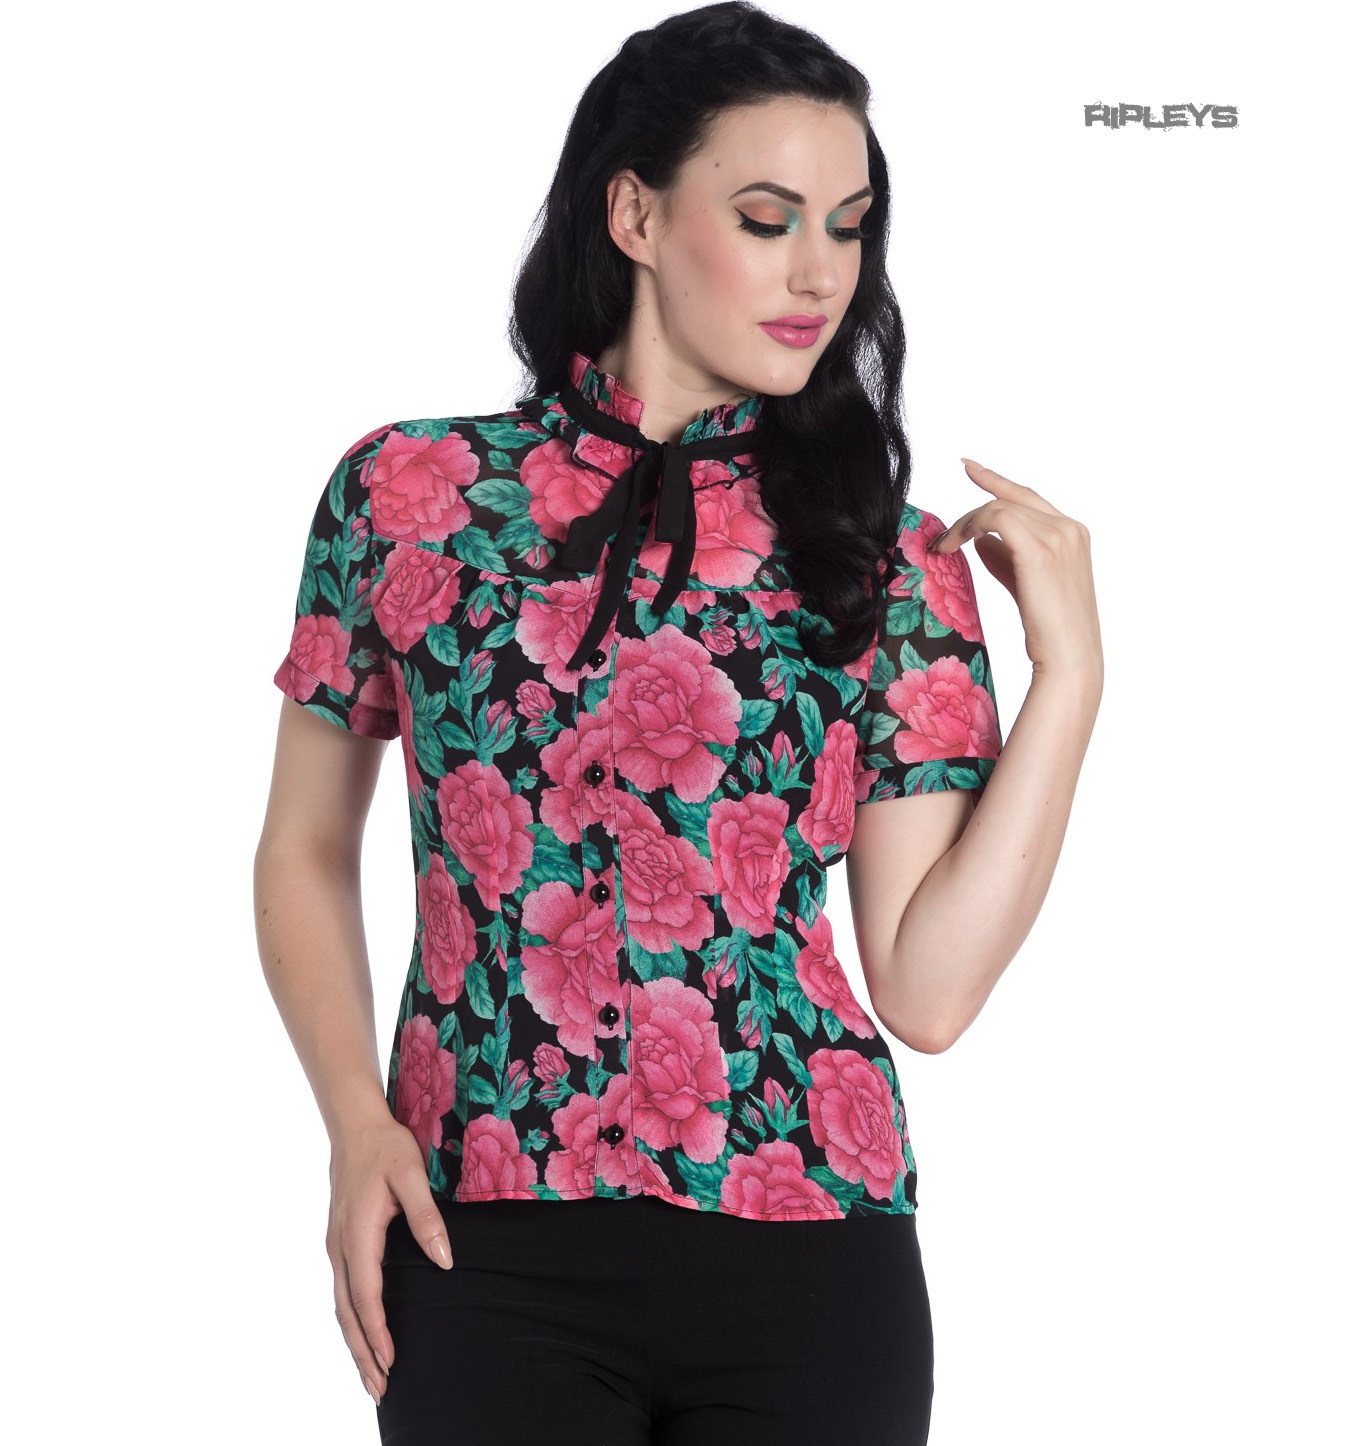 Hell-Bunny-Shirt-Top-Flowers-Roses-EDEN-ROSE-Black-Pink-Blouse-All-Sizes thumbnail 30